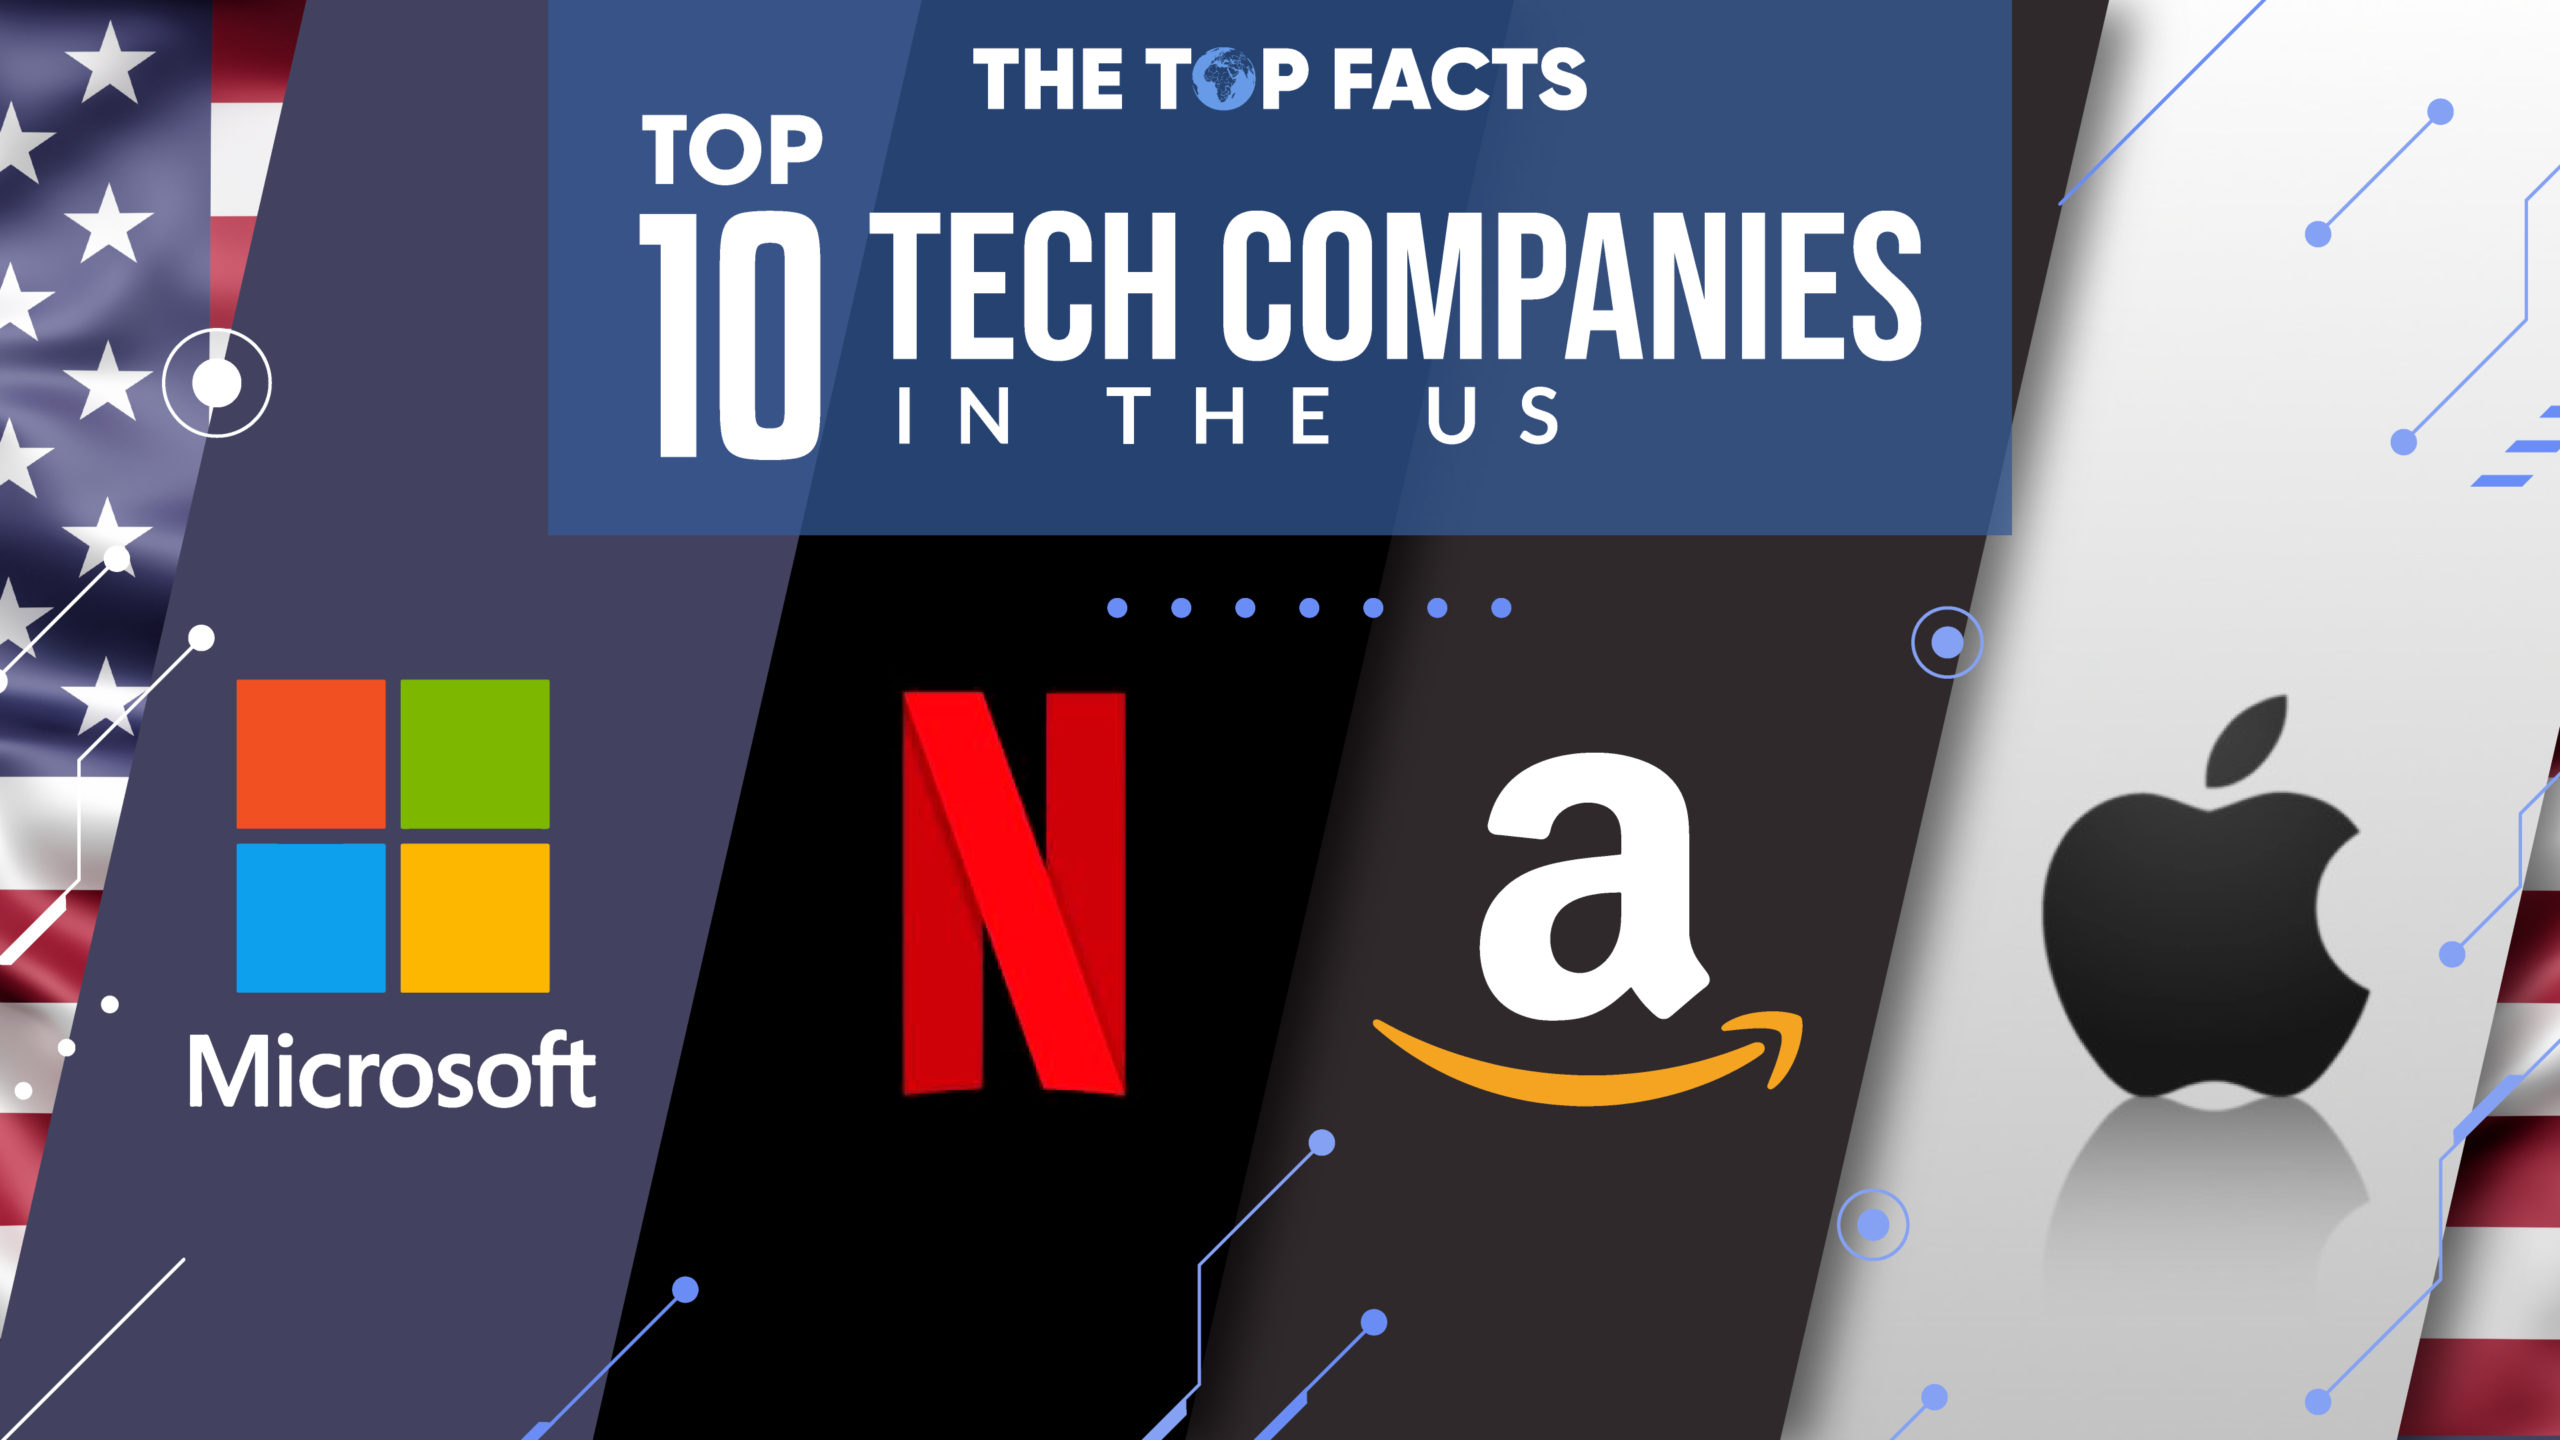 Top 10 Tech Companies in US   Top 10 Tech Giants in US   The Top Facts